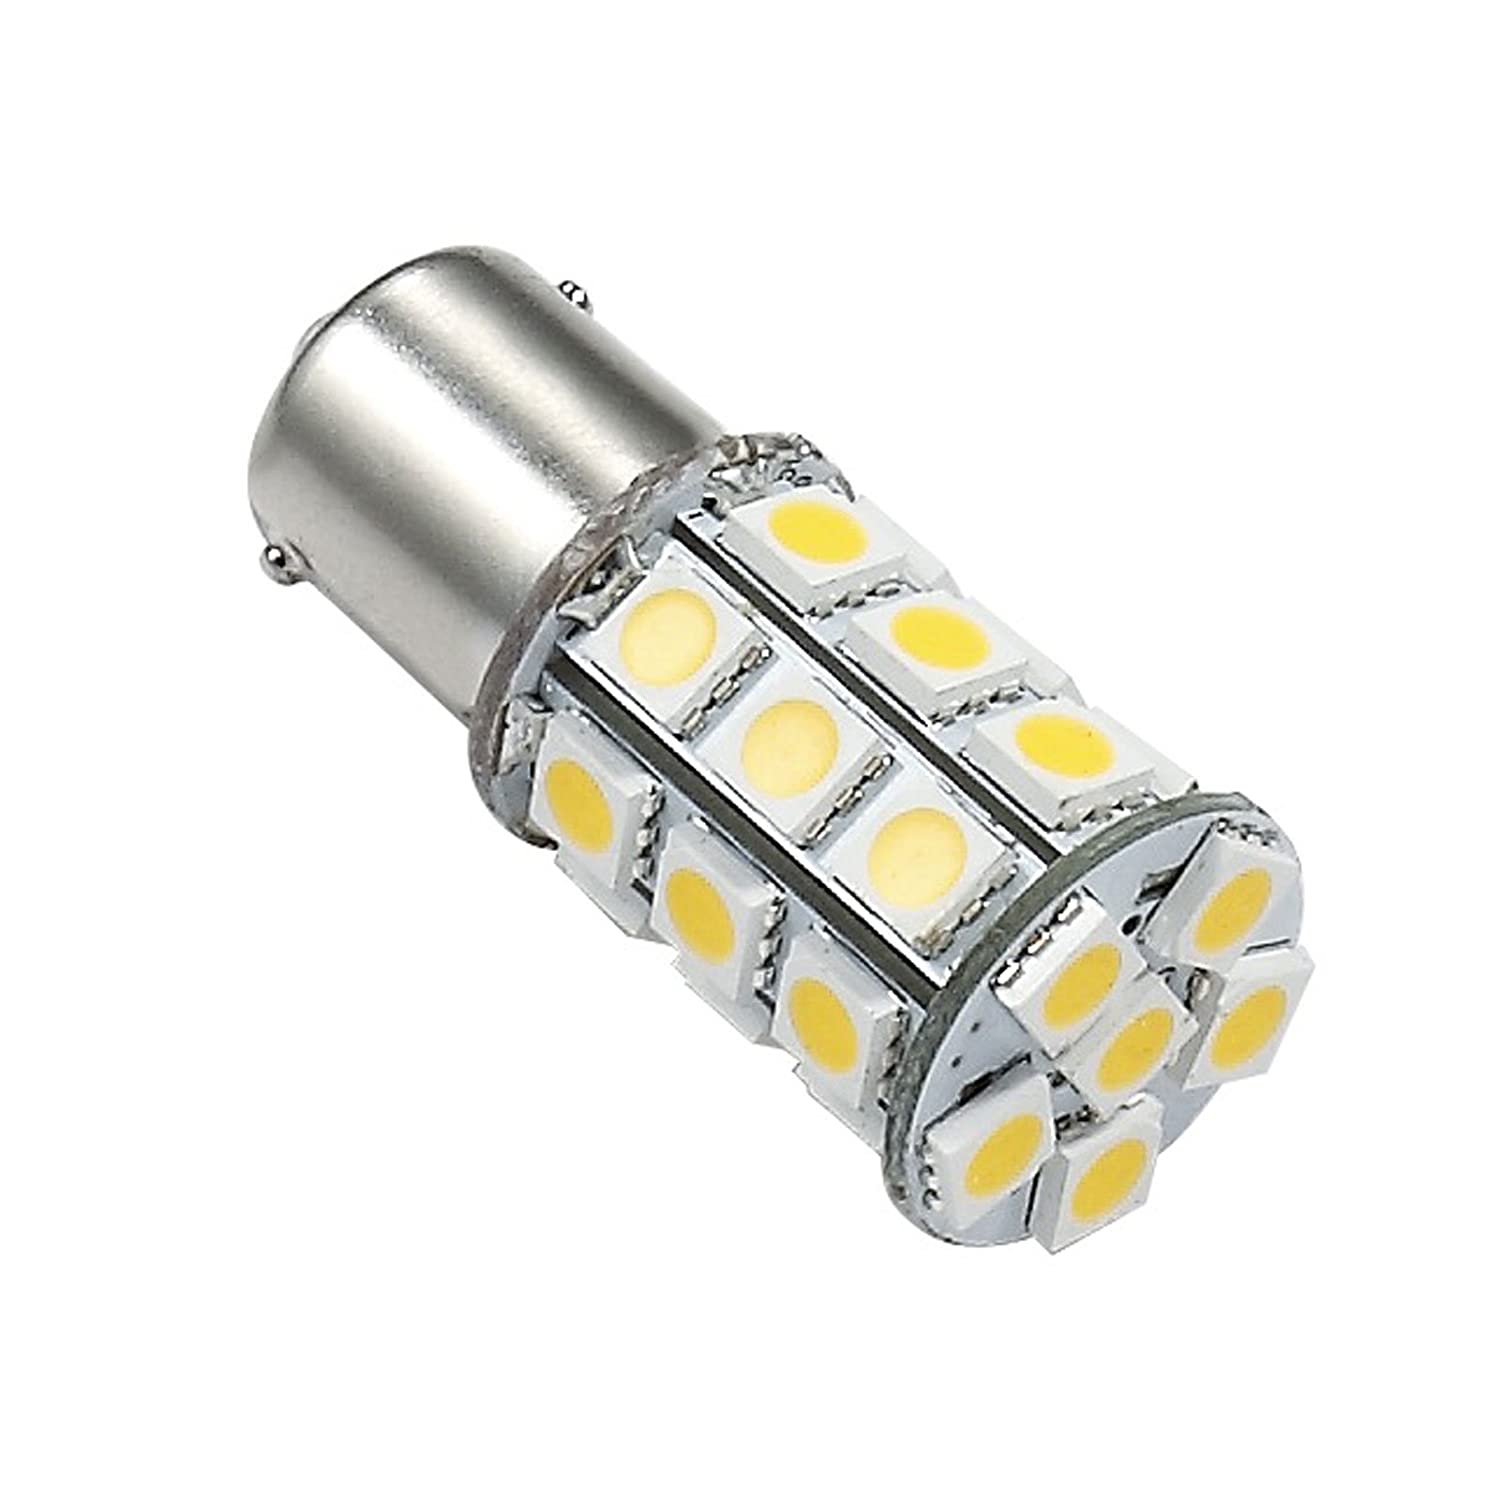 Green Value Led 25001v Warm White 1 Pack Led Replacement Rv Auto Marine Light Bulb Base Tower 1156 1141